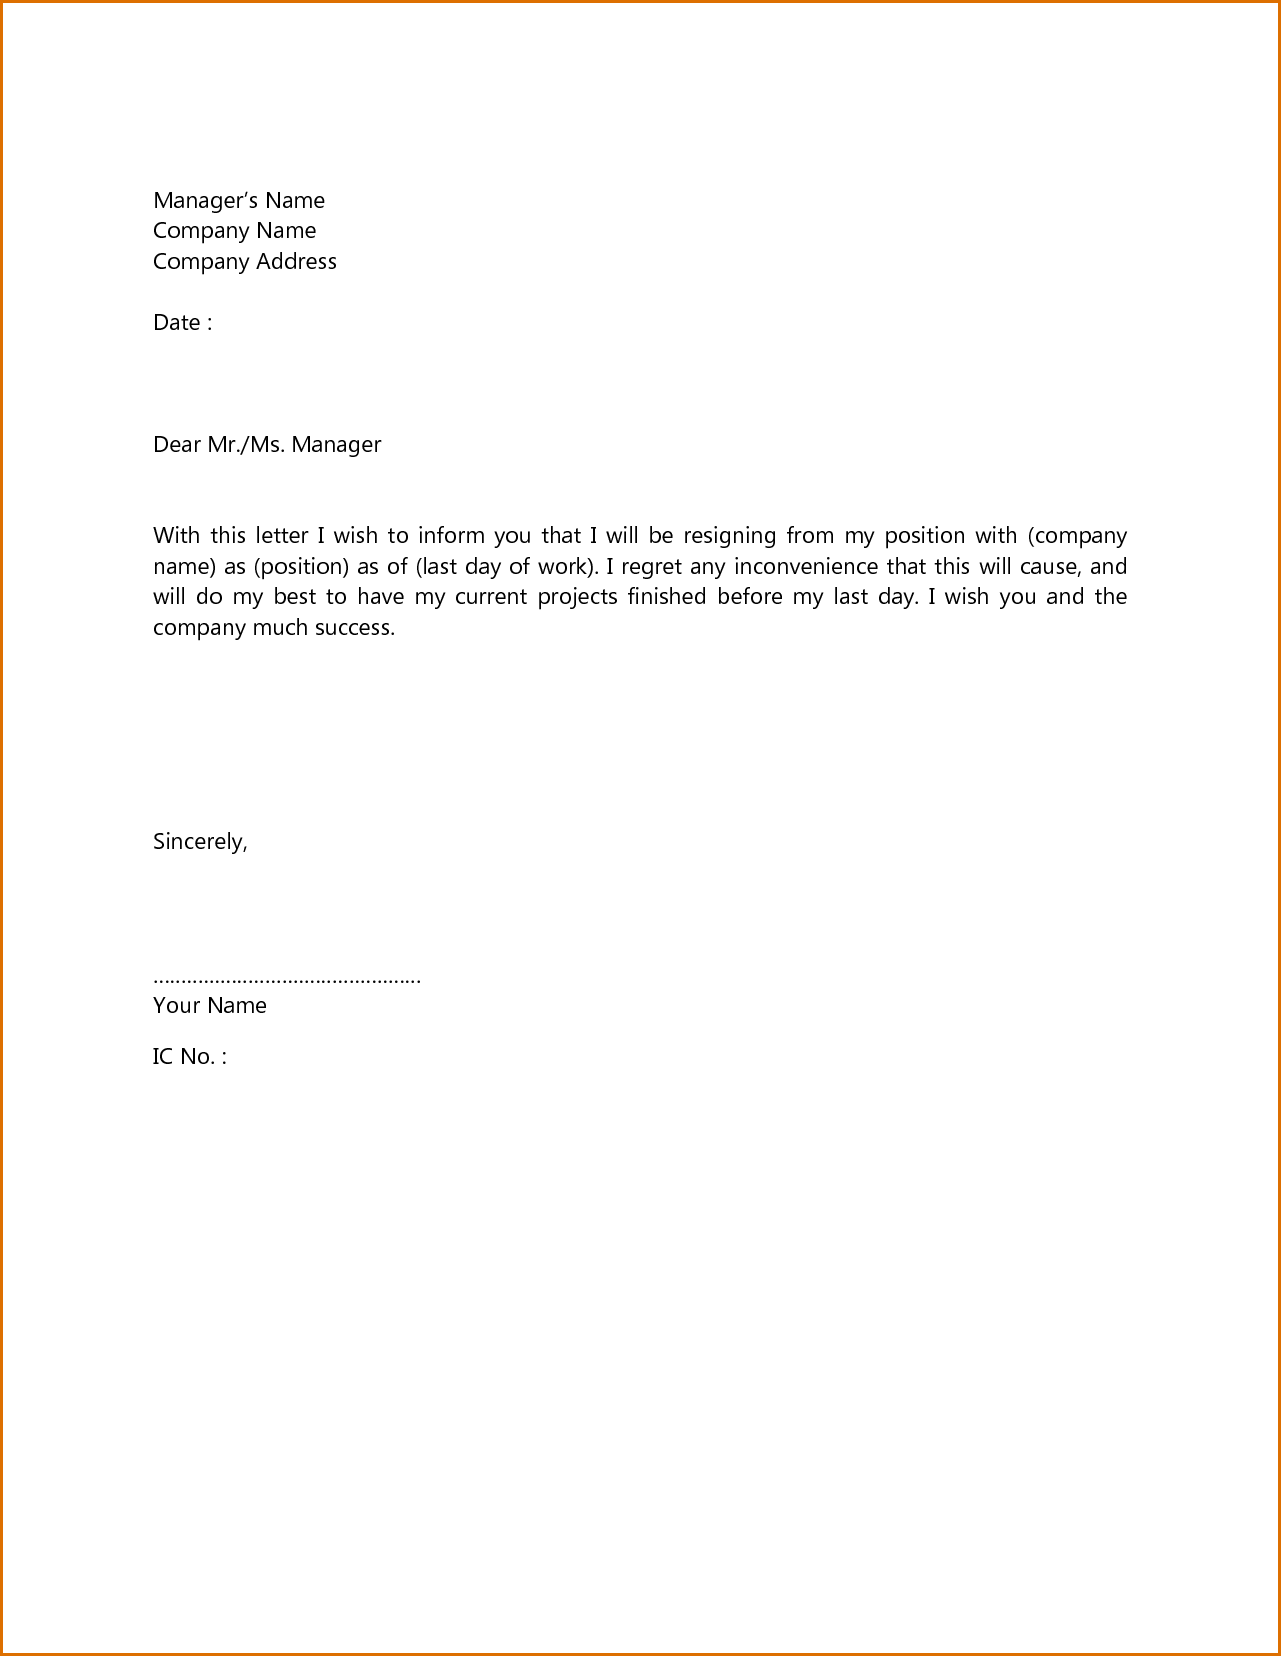 Simple format of resignation letter resume layout 2017 simple format of resignation letter resume layout 2017 thecheapjerseys Image collections